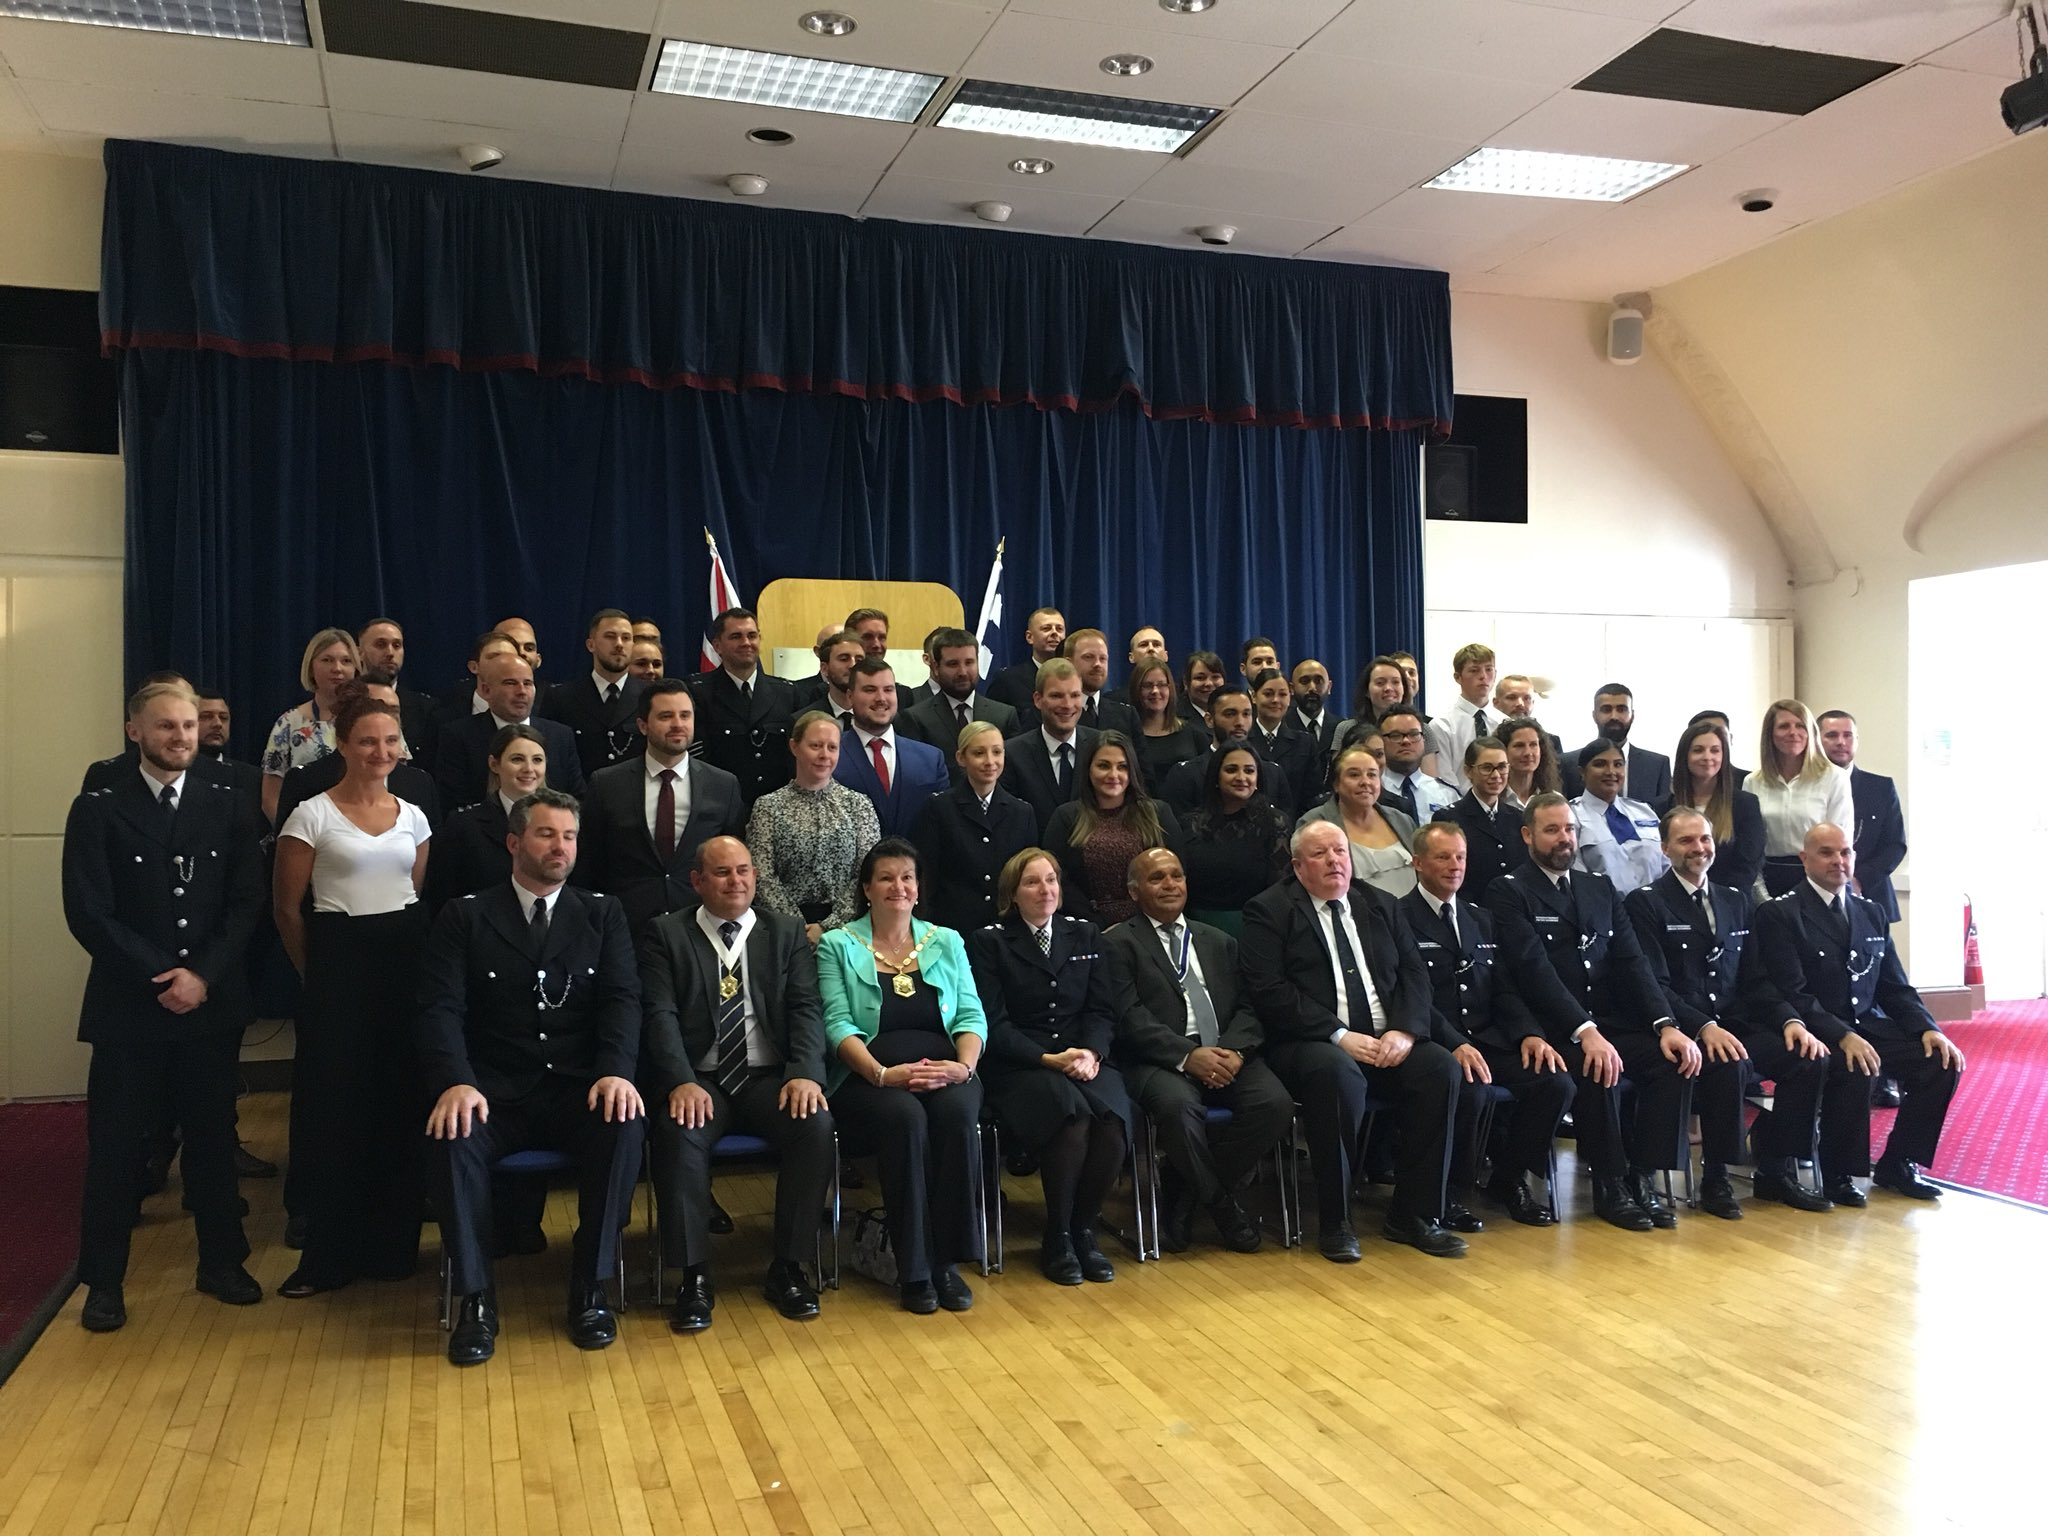 That's it from us at the #SouthWestBCU commendation ceremony this morning. We hope you enjoyed hearing the stories of extreme heroism, compassion & dedication we have commended here today. We are so proud of our officers and their commitment to keeping Londoners safe 💙 https://t.co/mBPoY6WWhg